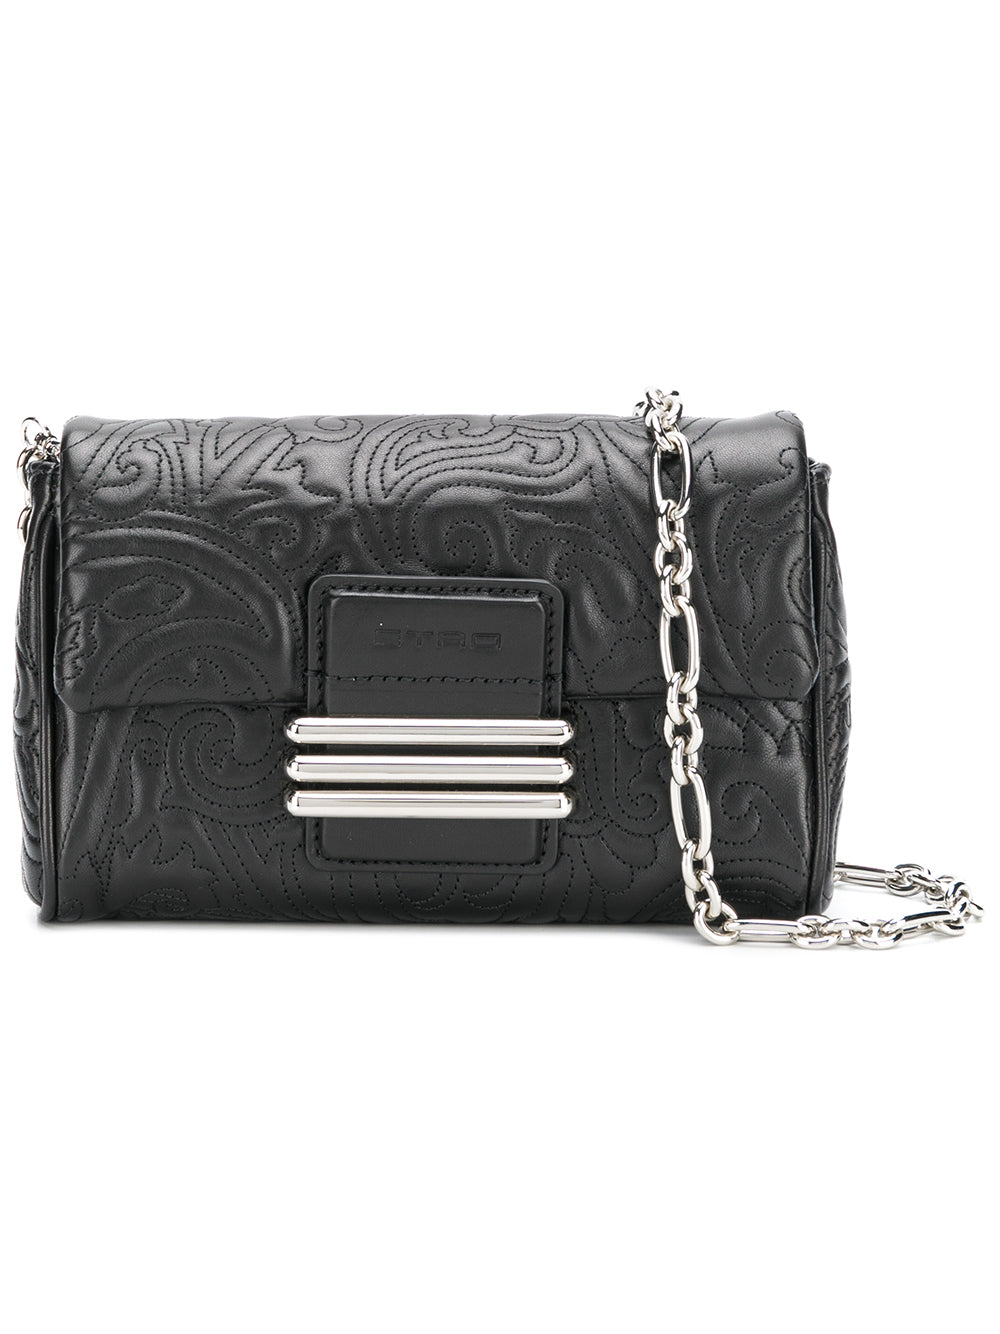 ba00e2b1981e Quilted Black Leather Clutch Bag – KultBoutique